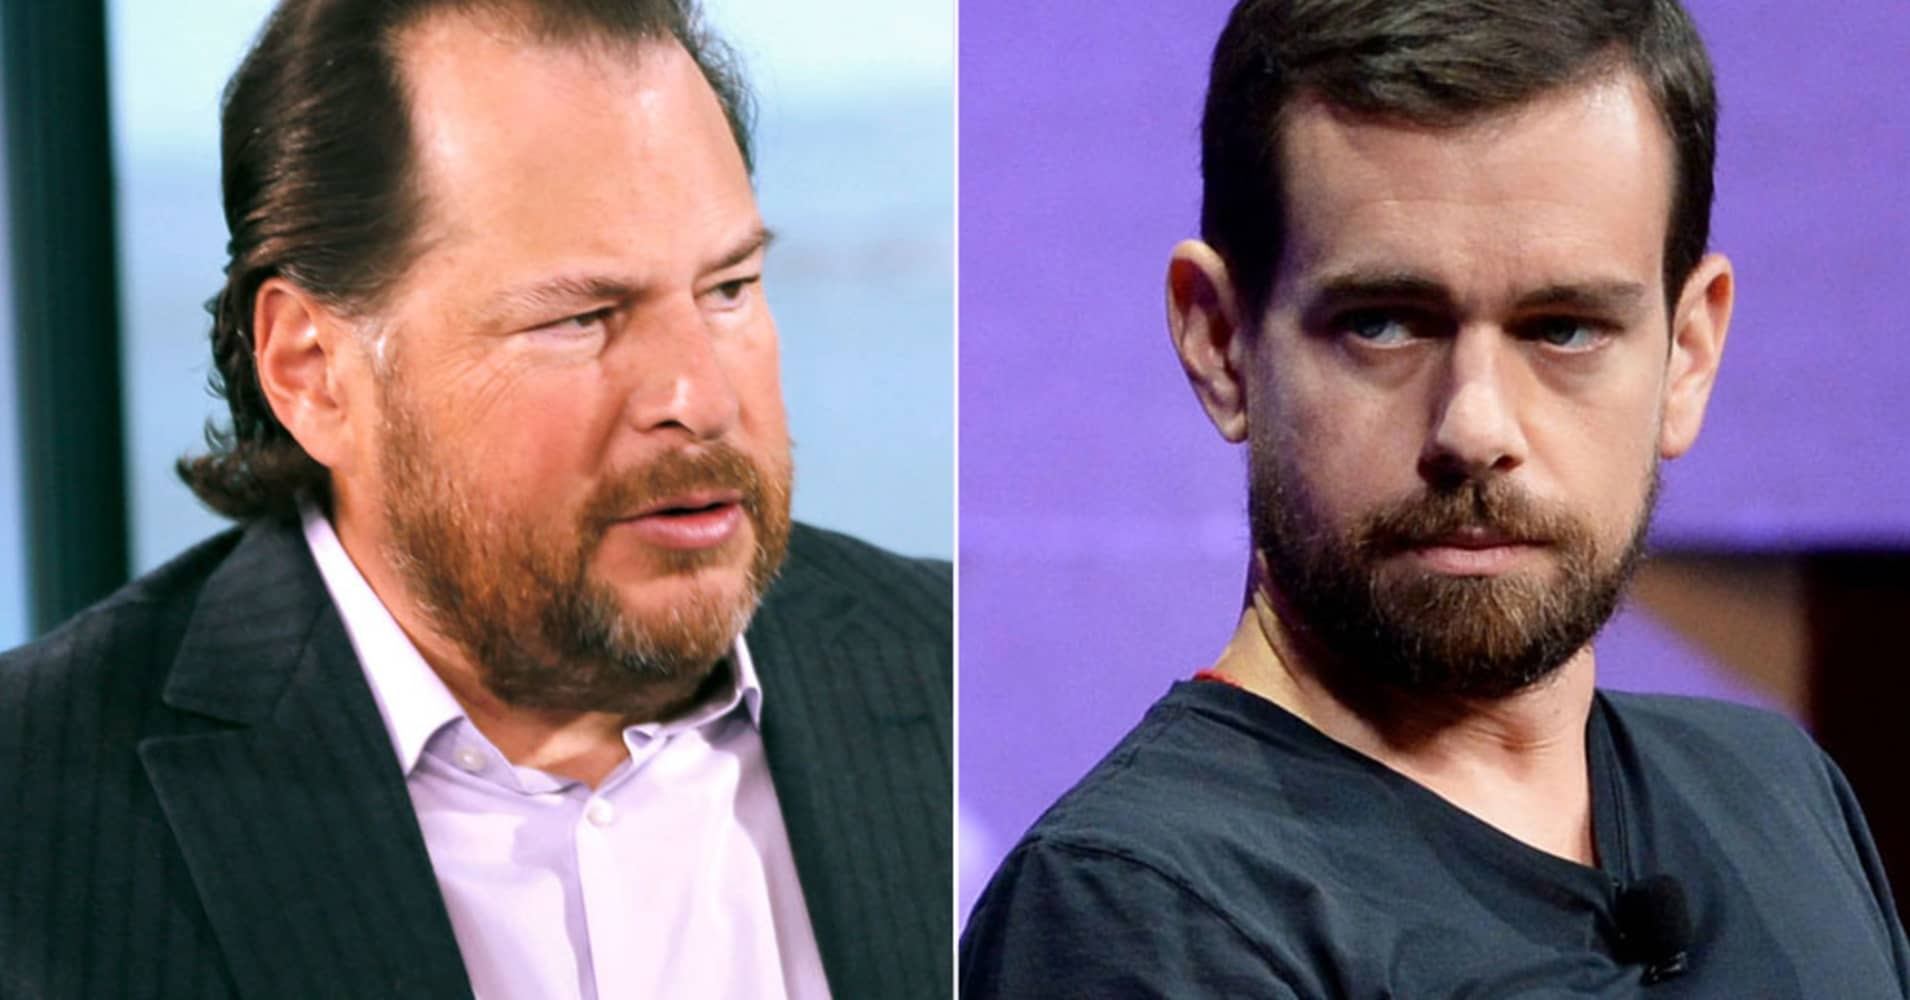 San Francisco tech CEOs Marc Benioff and Jack Dorsey spar over proposal to fight homelessness